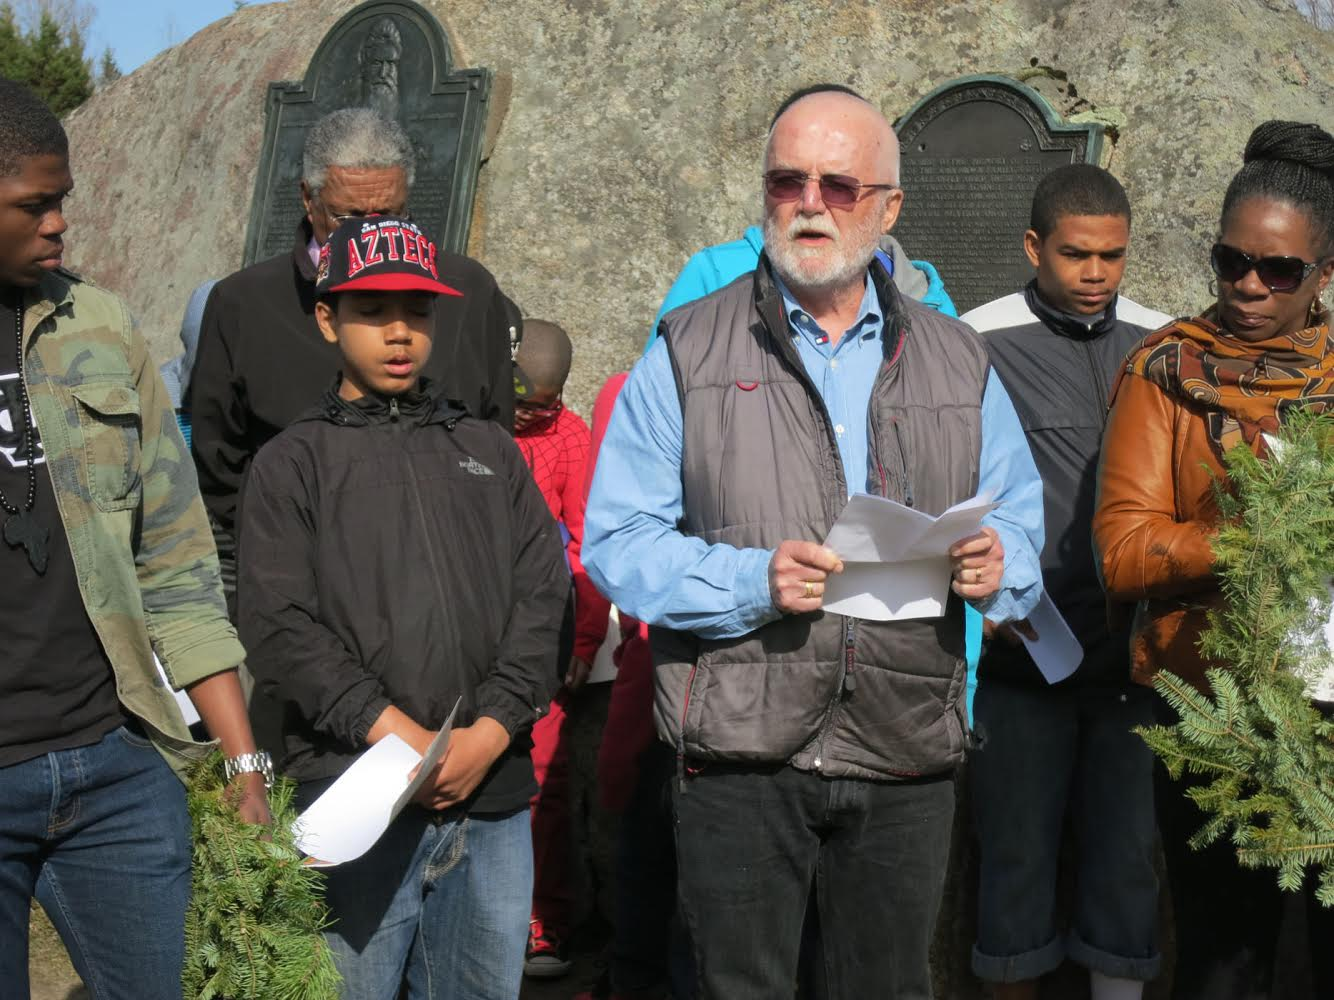 Russell Banks reading John Brown's last statement at the courtroom in front of John Brown's grave.